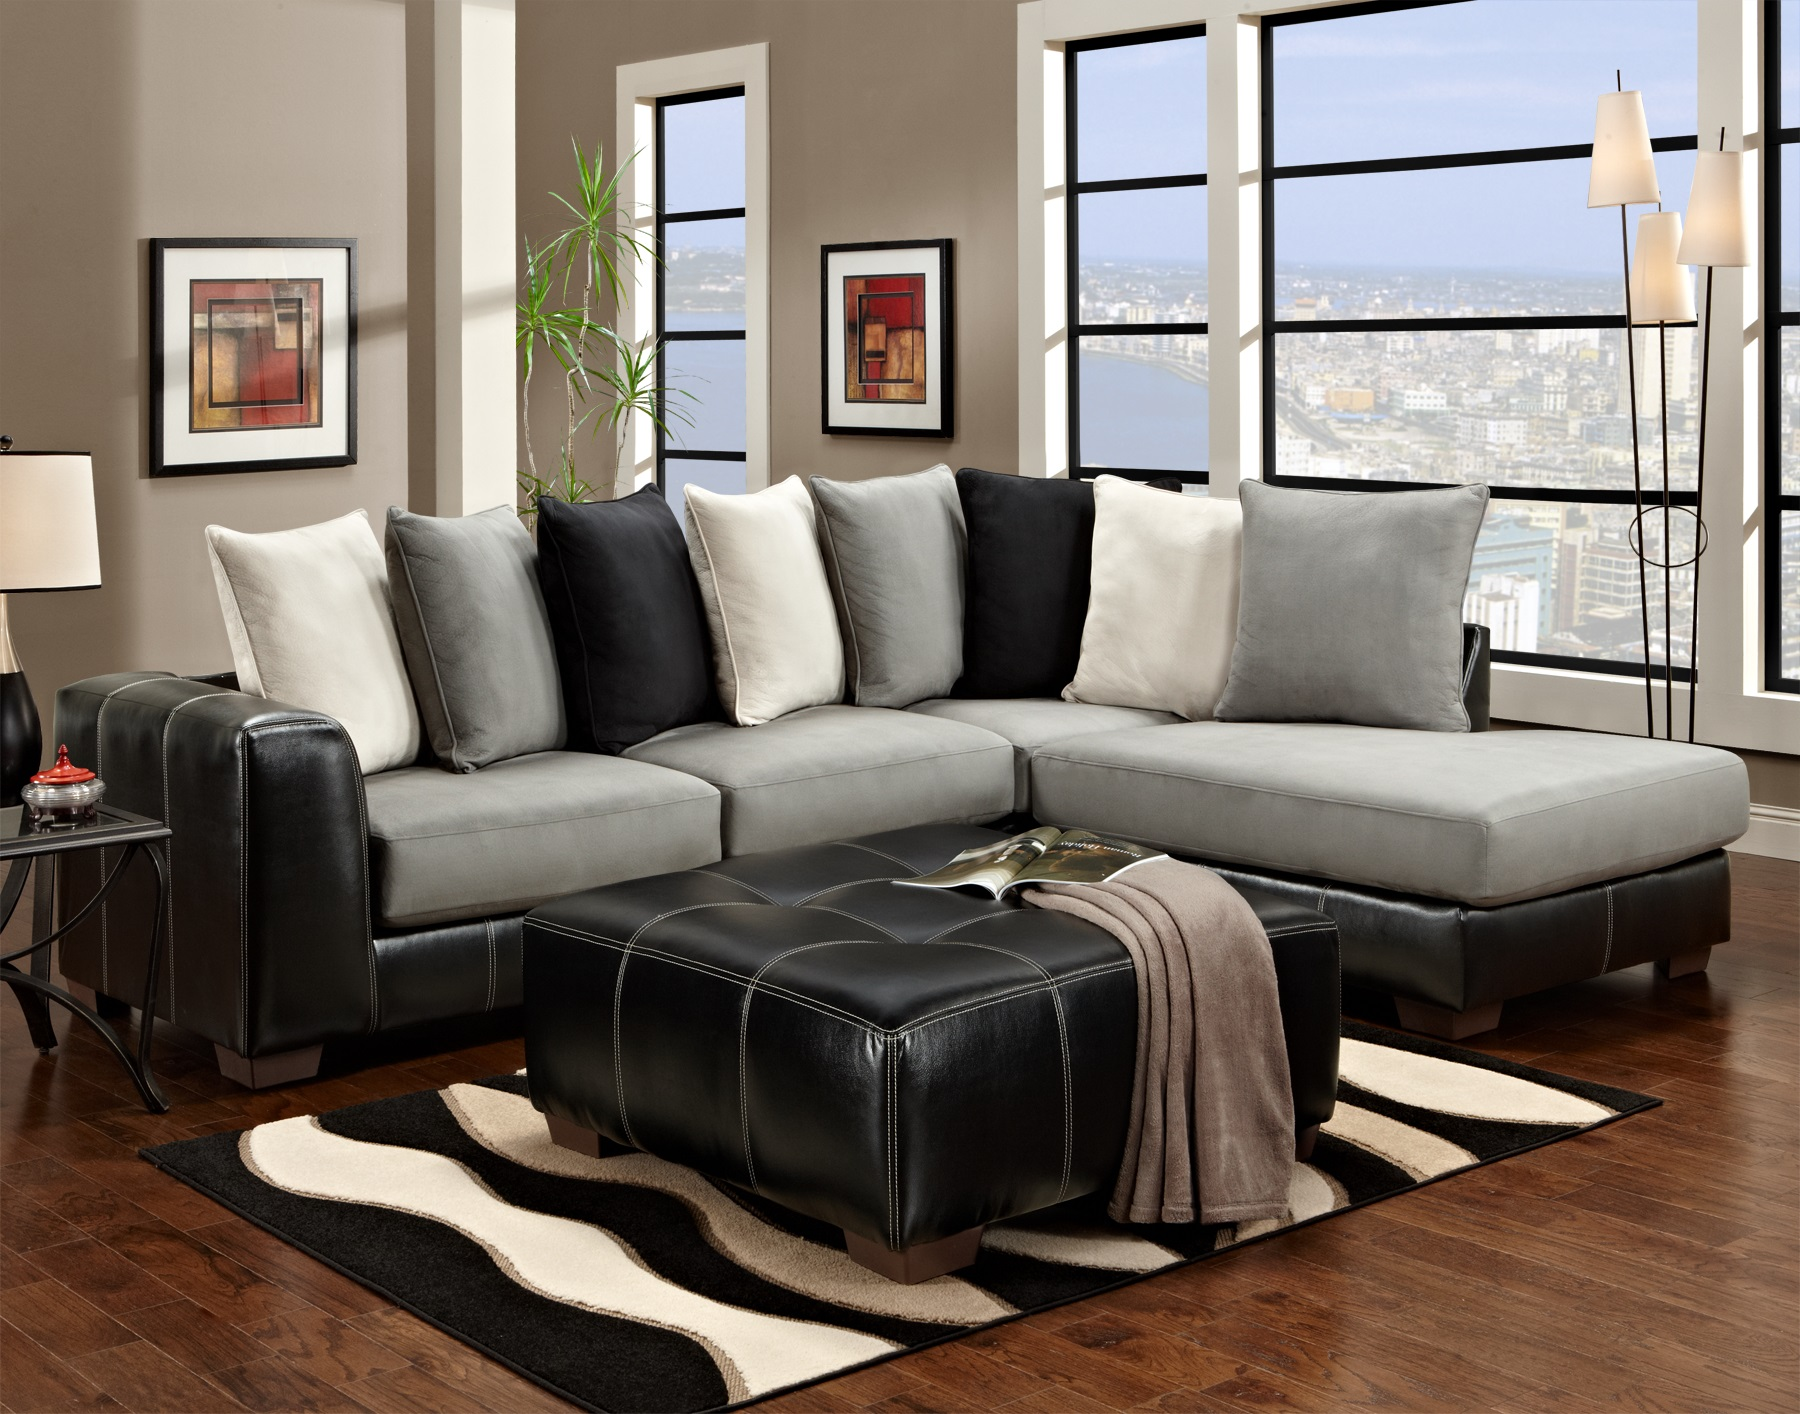 Idol Steel Sectional Sofa With Black Ottoman